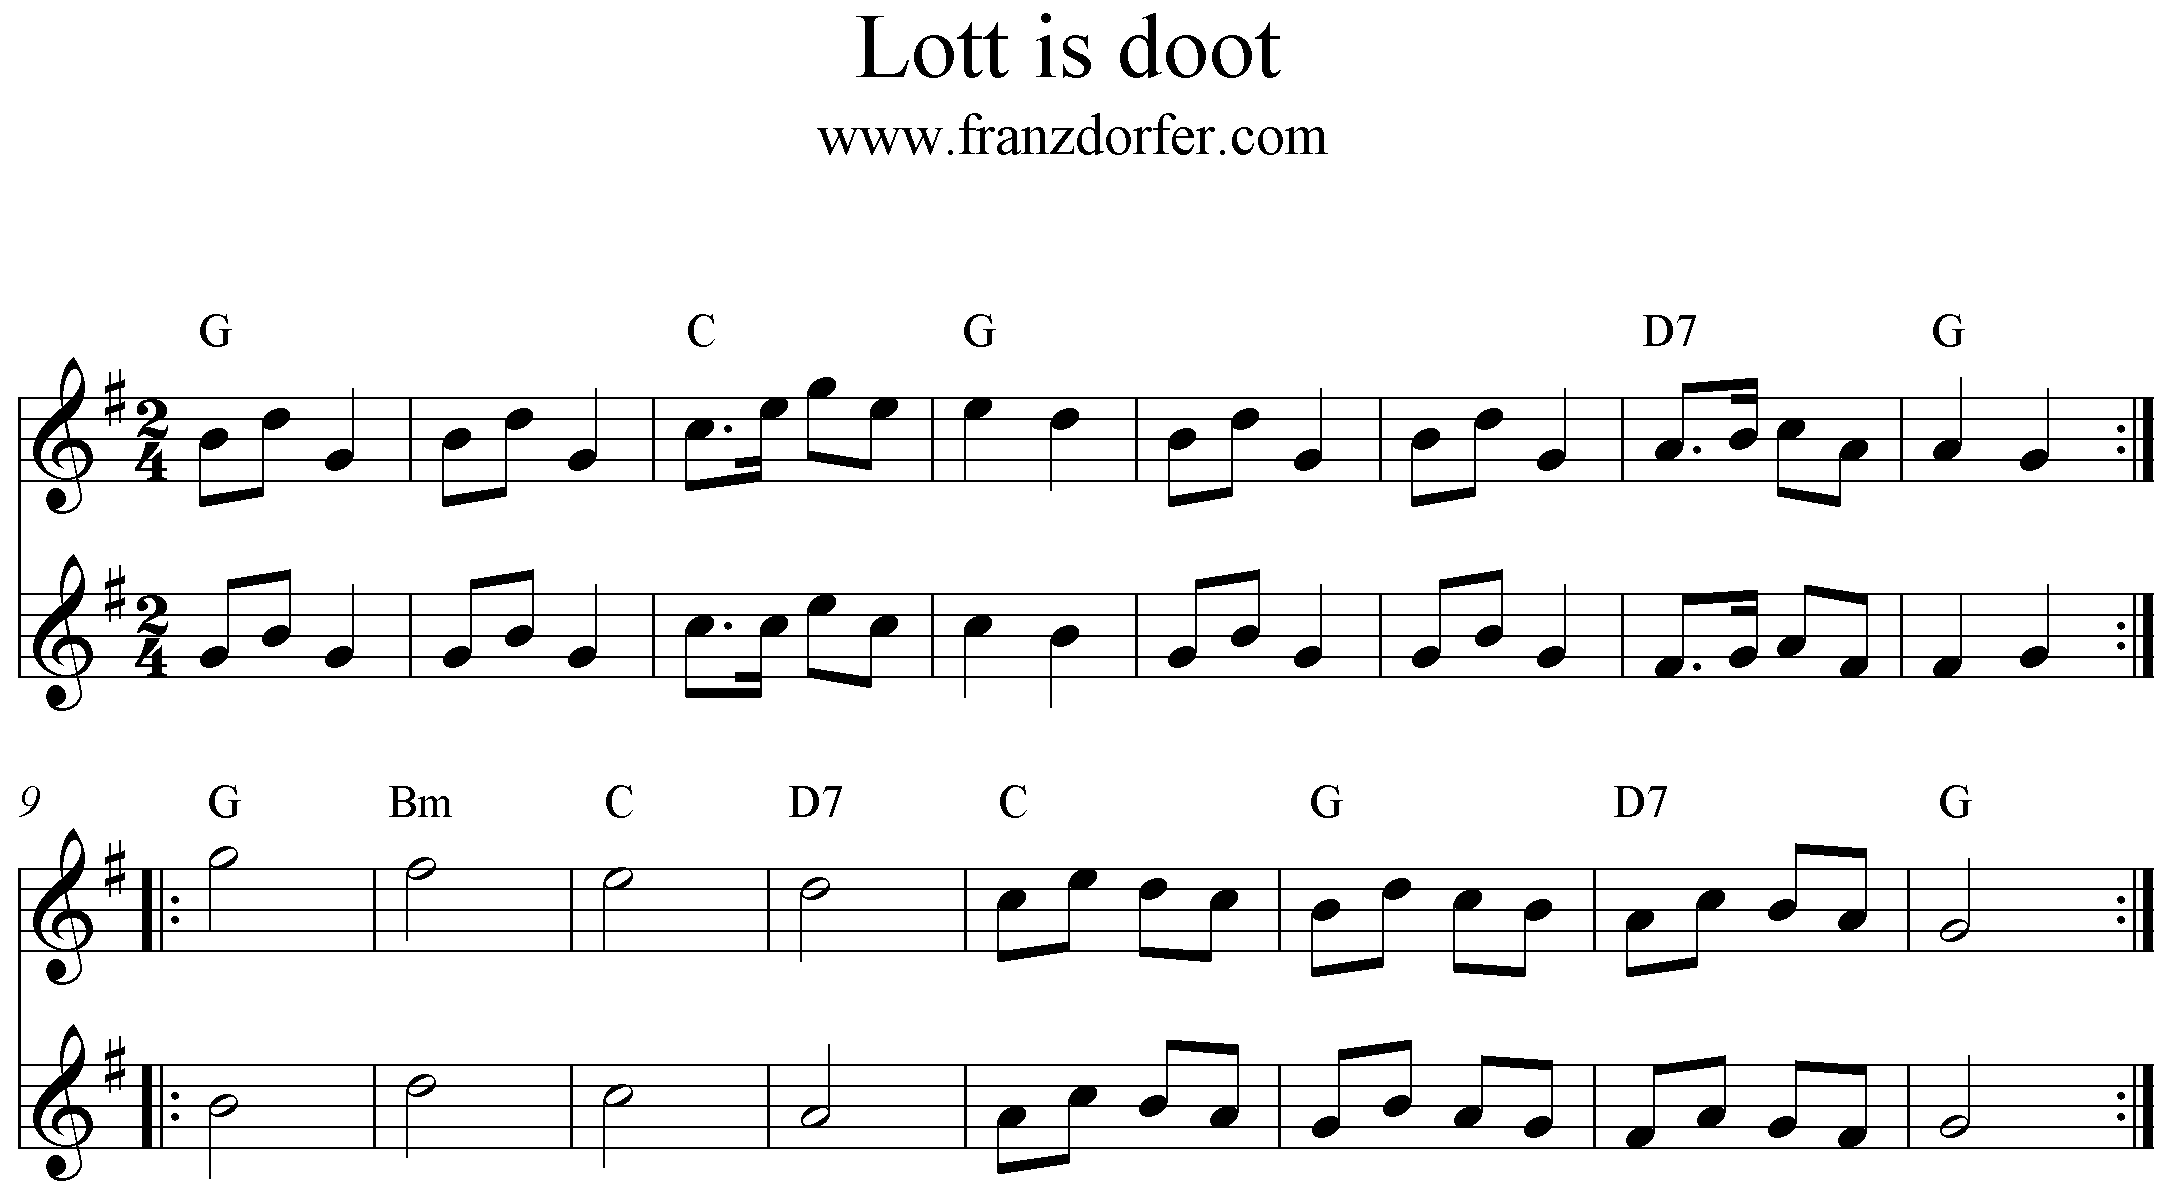 Noten Lott is doot